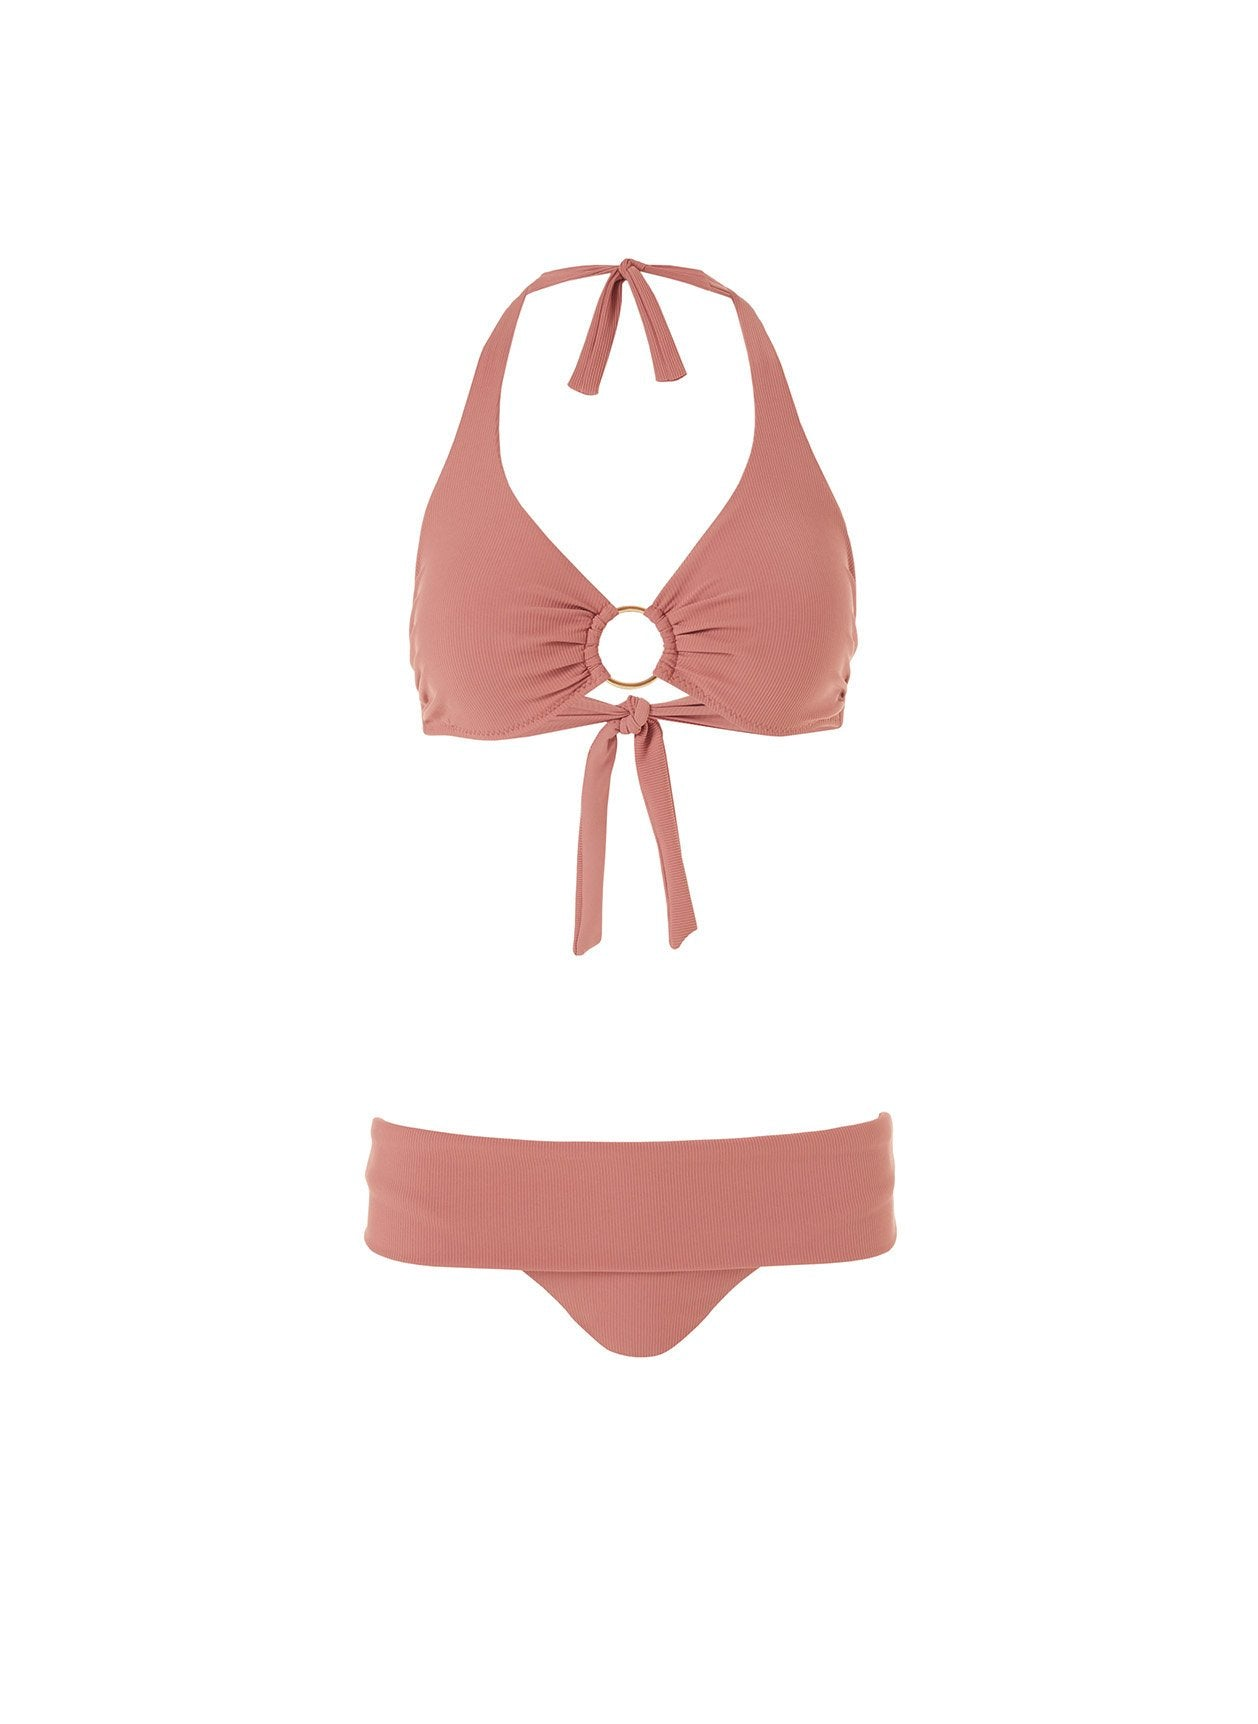 Brussels Dusty Rose Supportive Halterneck Bikini 2020